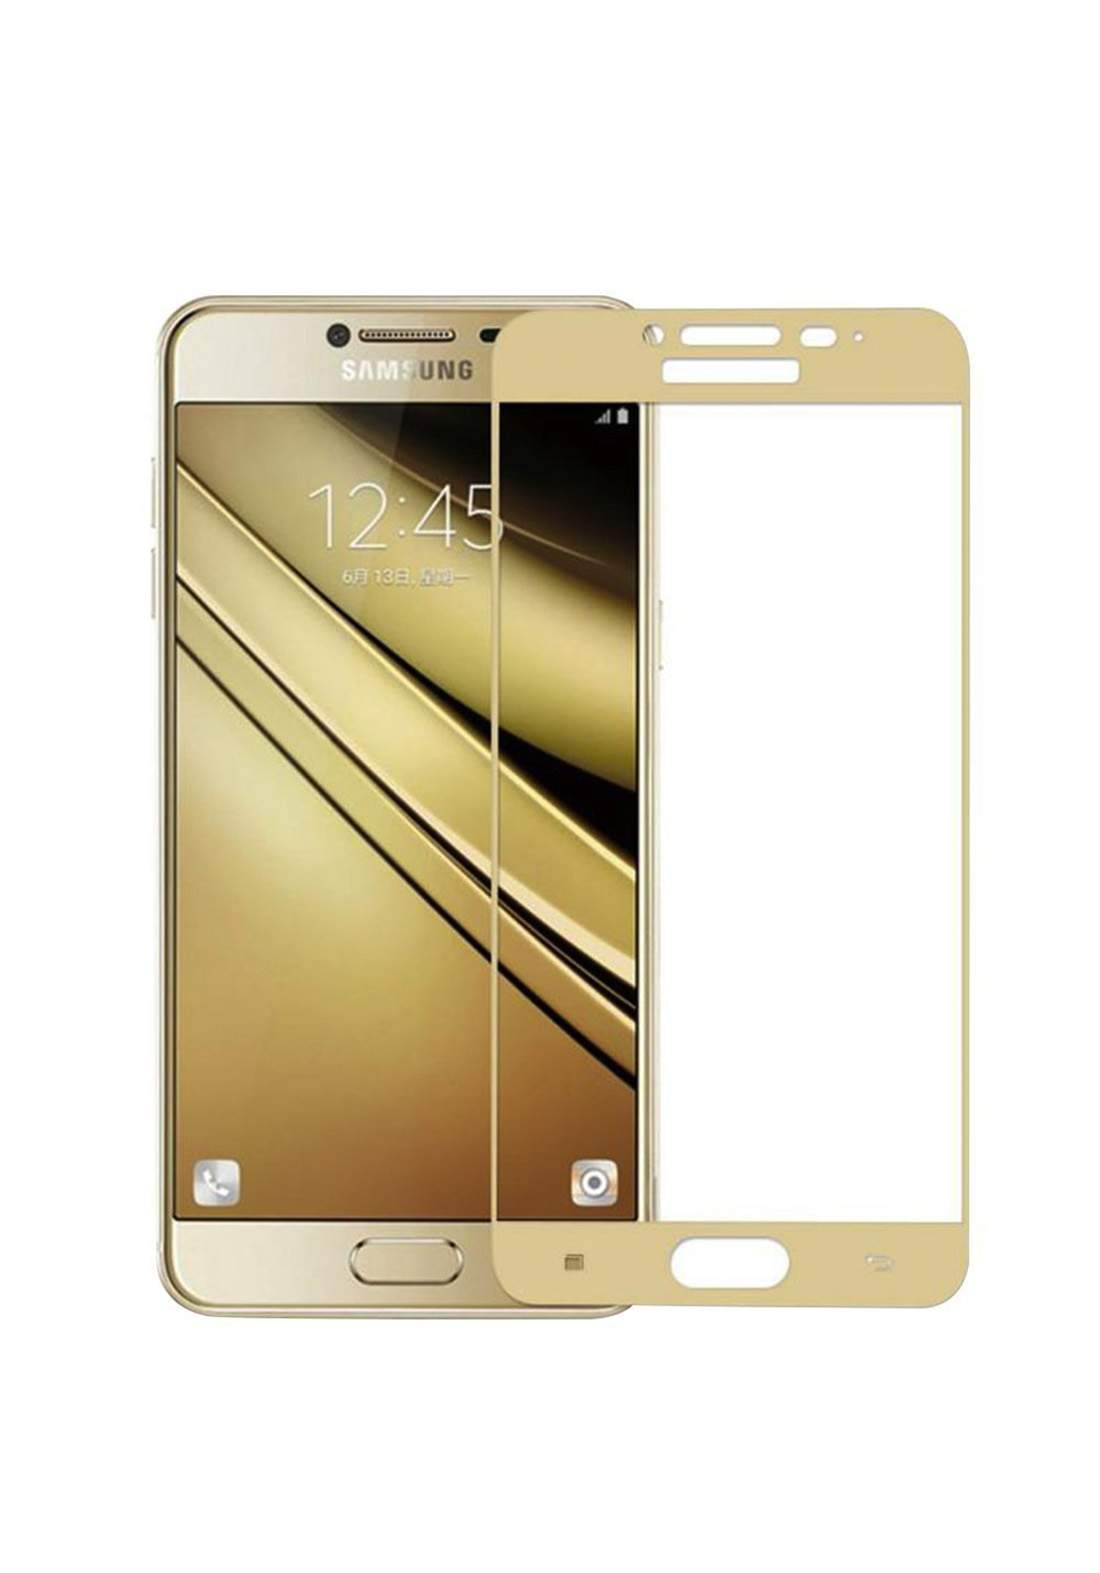 Samsung Galaxy J7 Prime 5D Tempered Glass Screen Protector - Gold واقي شاشة